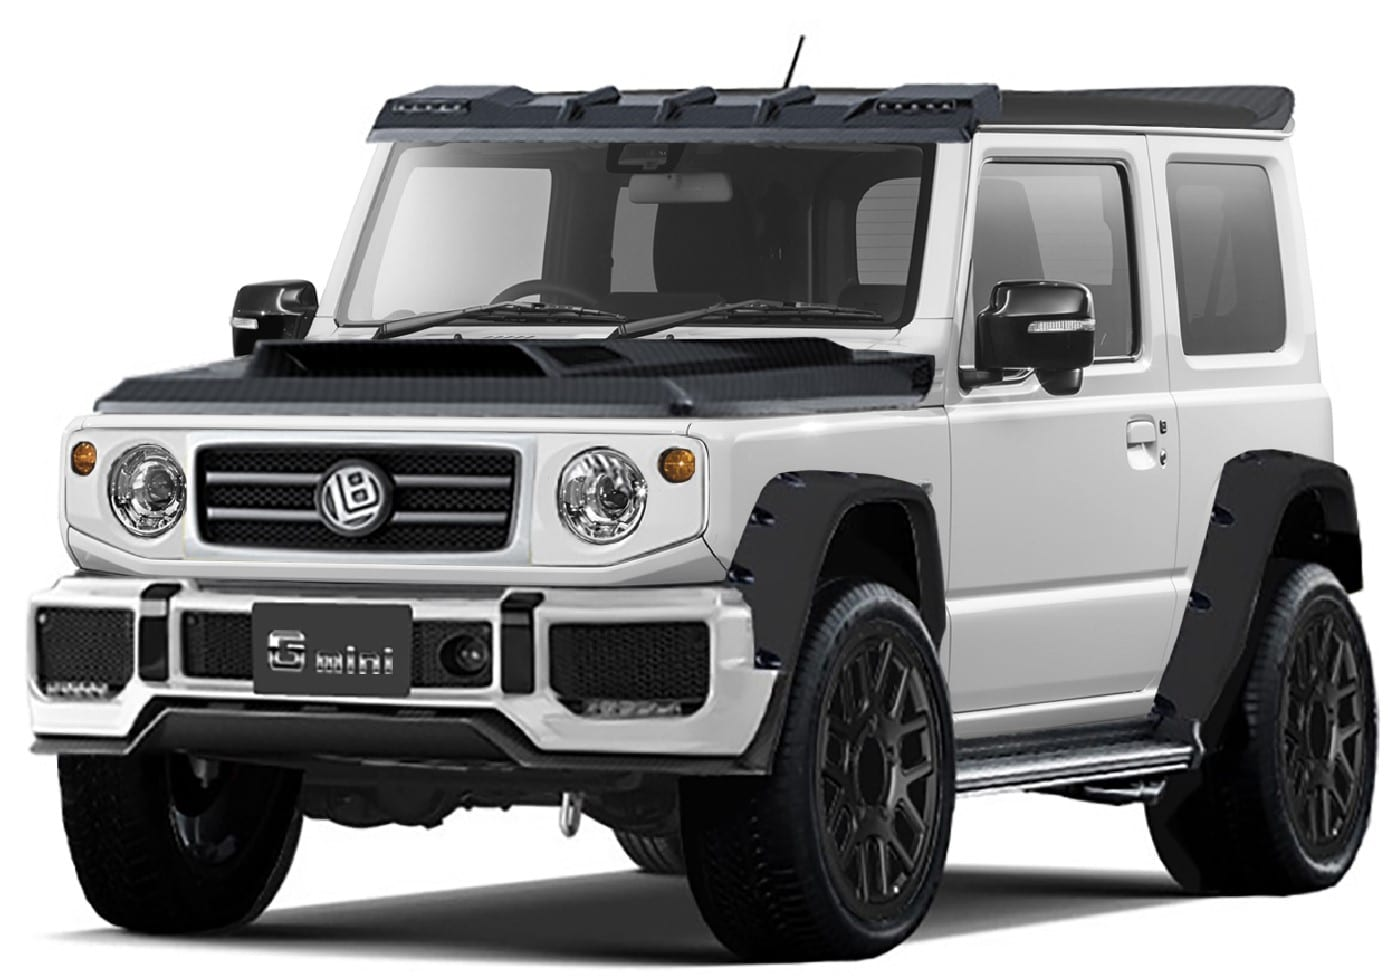 The Suzuki G-Wagon, sort of…